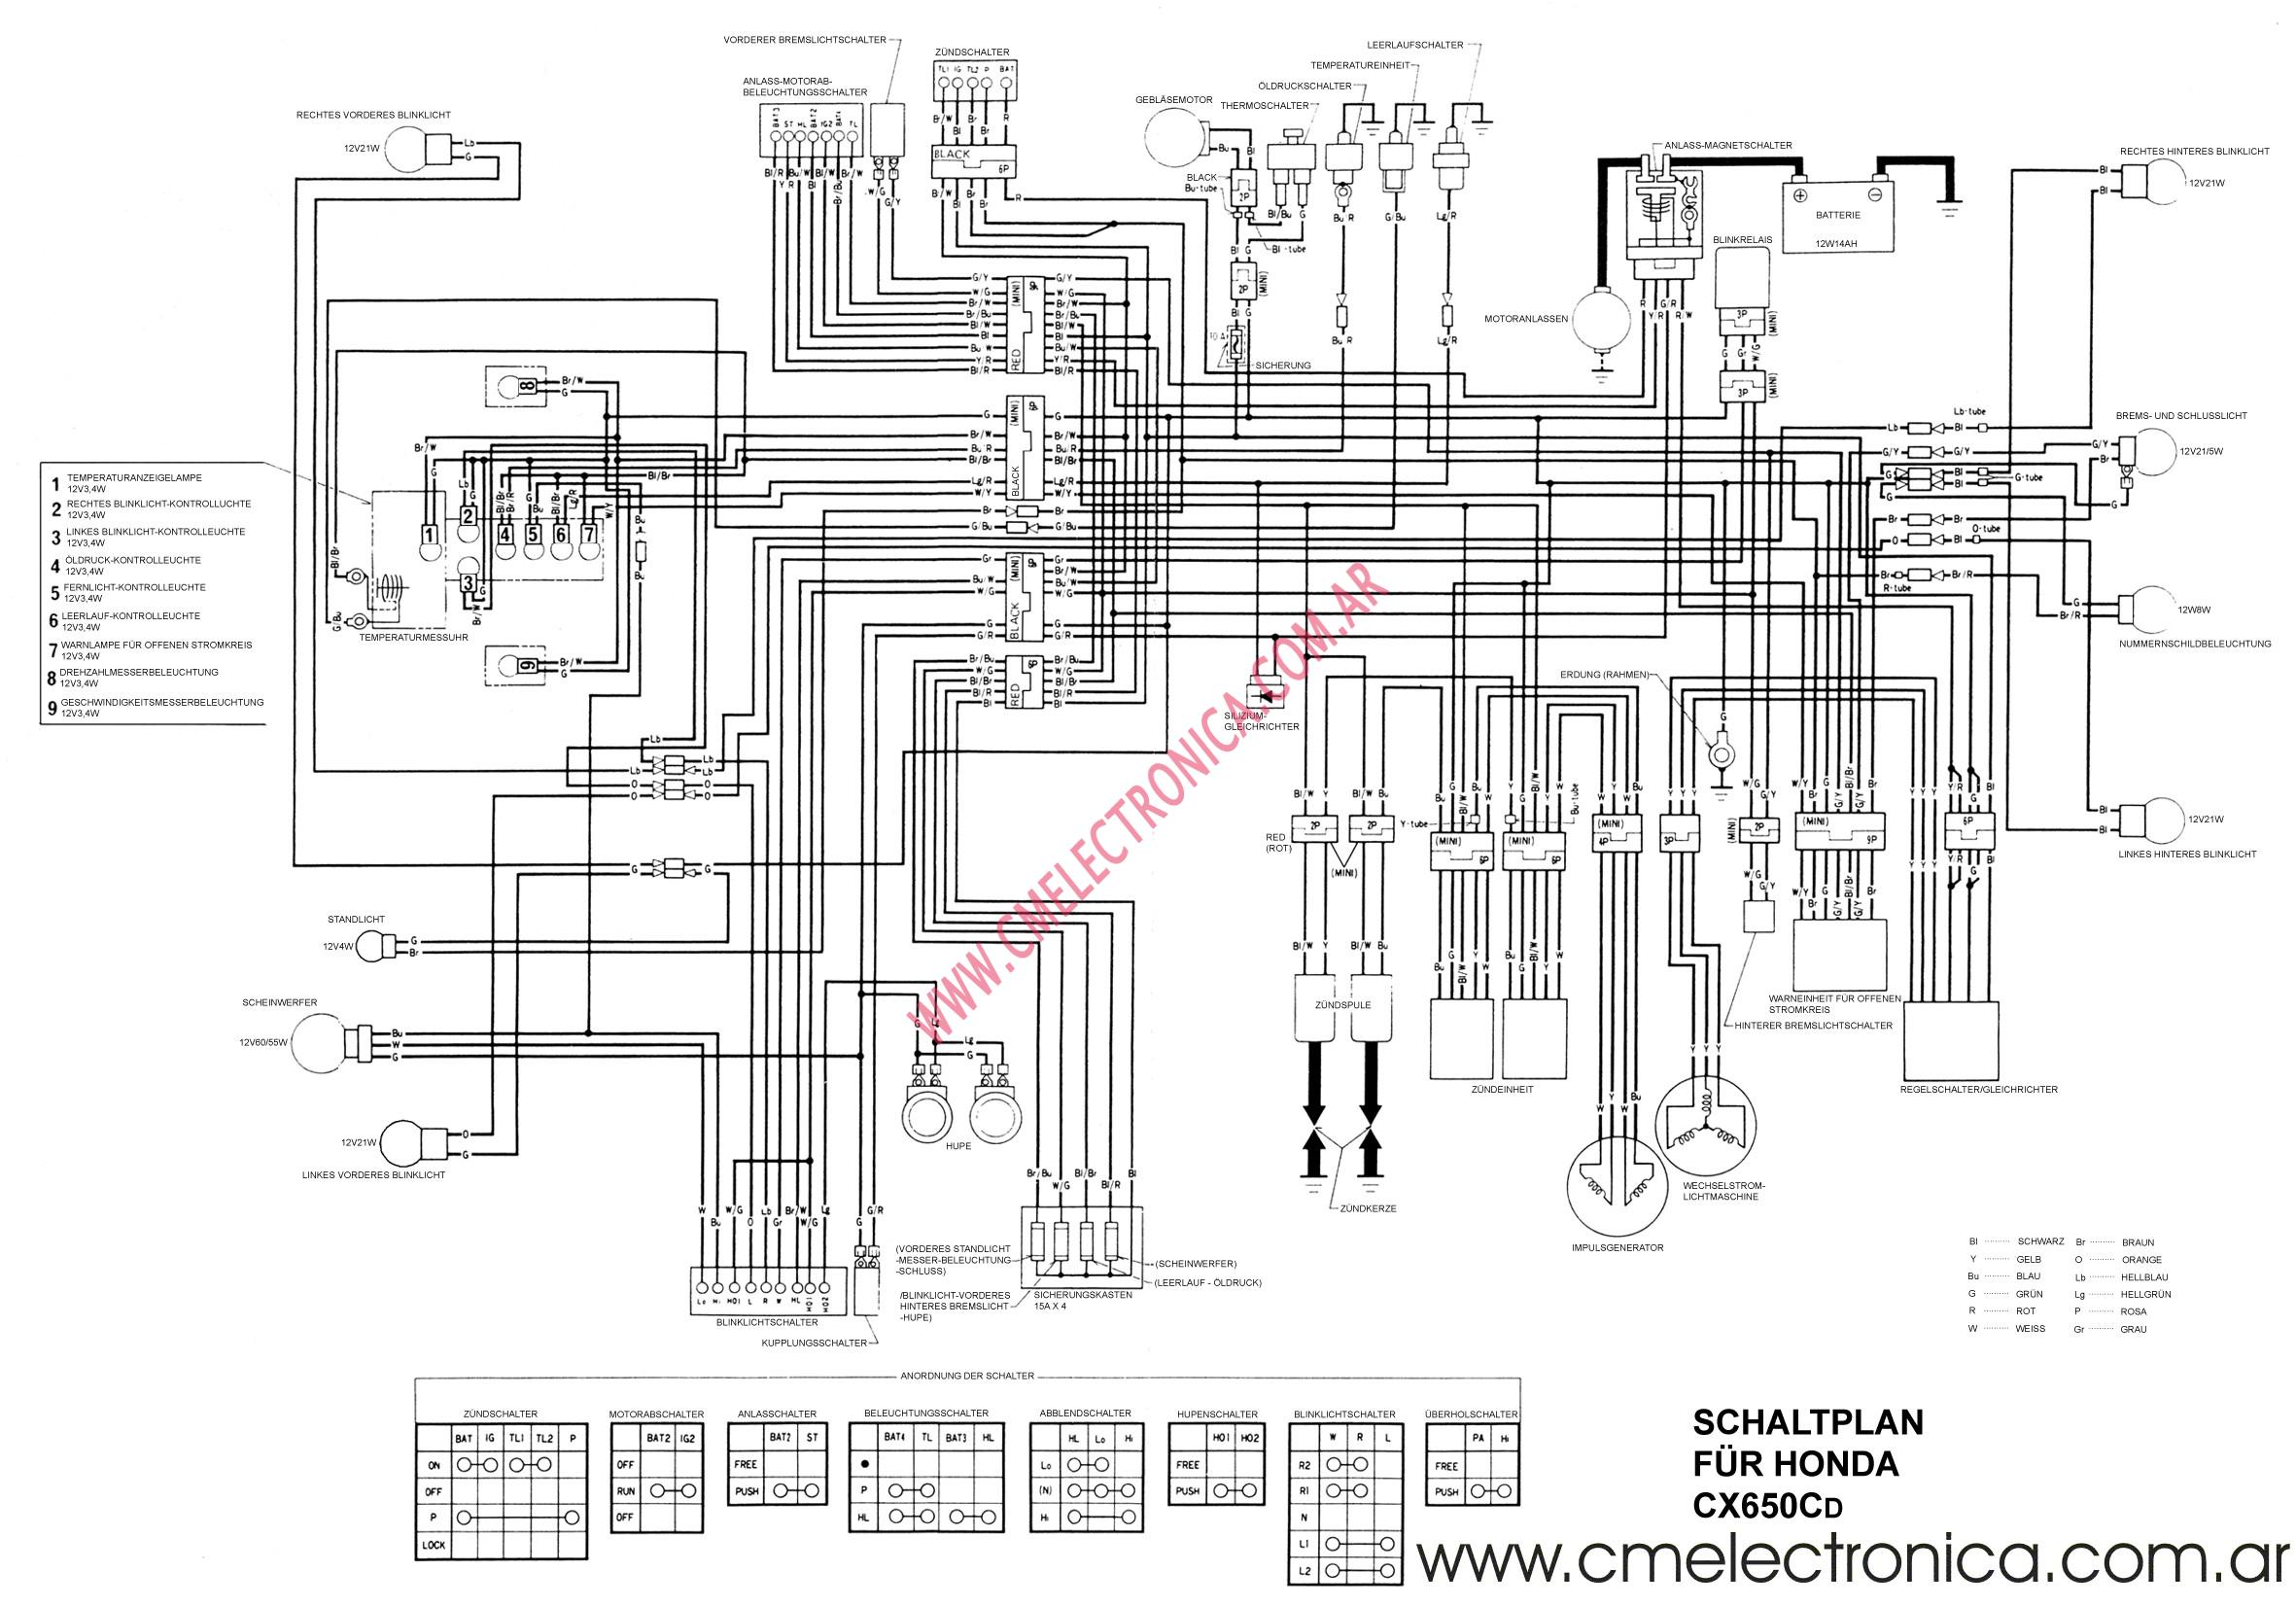 Yamaha Banshee Wiring Diagram moreover Hummer H1 Mpg together with 1431904 moreover Kymco Like 50 Wiring Diagram moreover Schwinn Rear Parts Diagram. on aprilia parts diagram